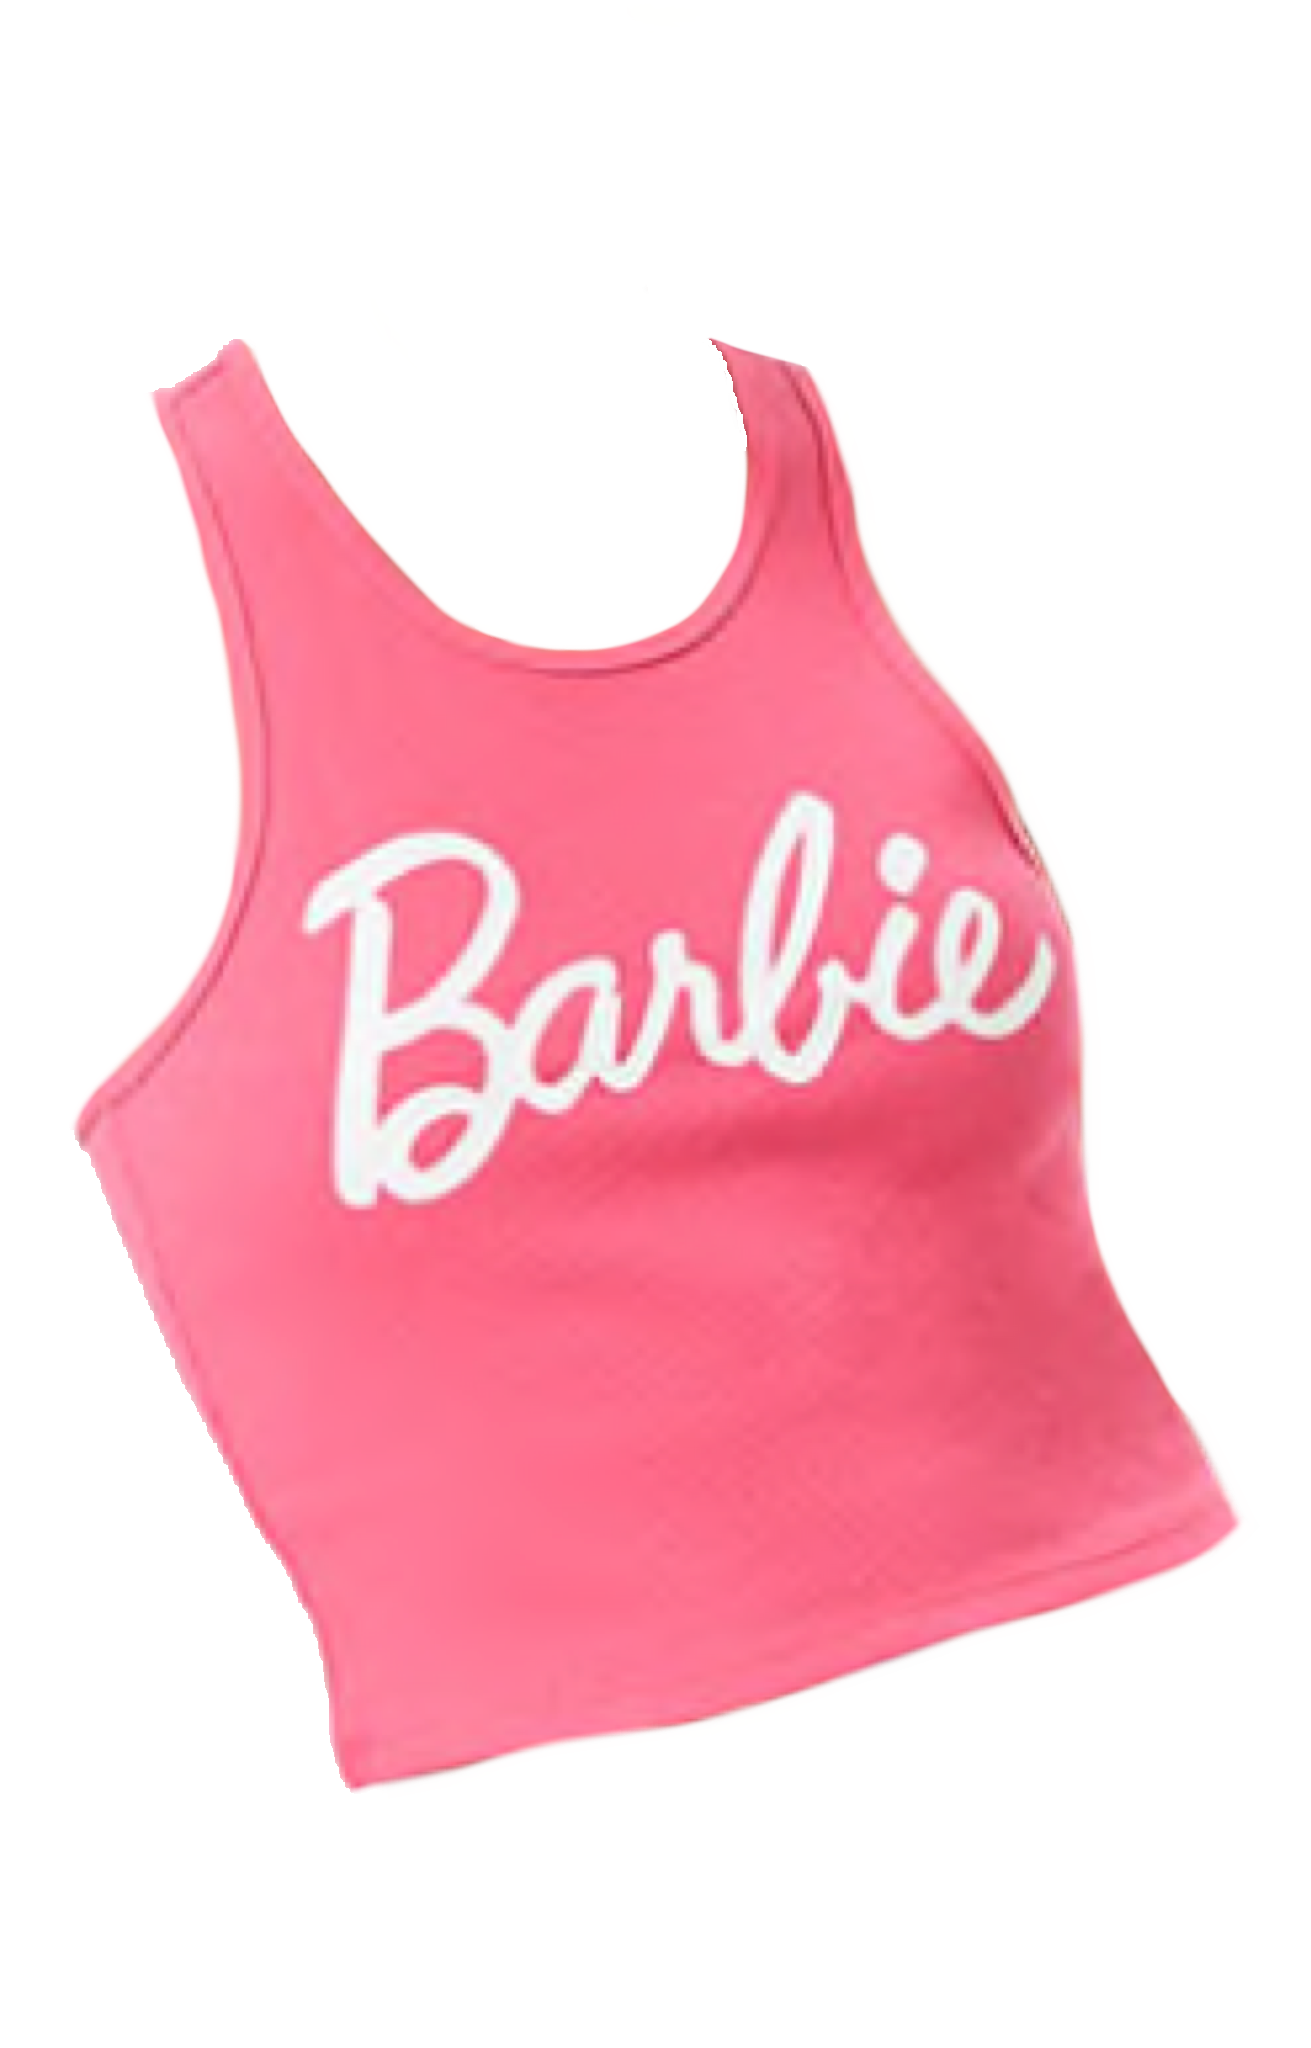 Pink Barbie Tank Top Polyvore Moodboard Filler Aesthetic Shirts Barbie Pink Pink Outfits